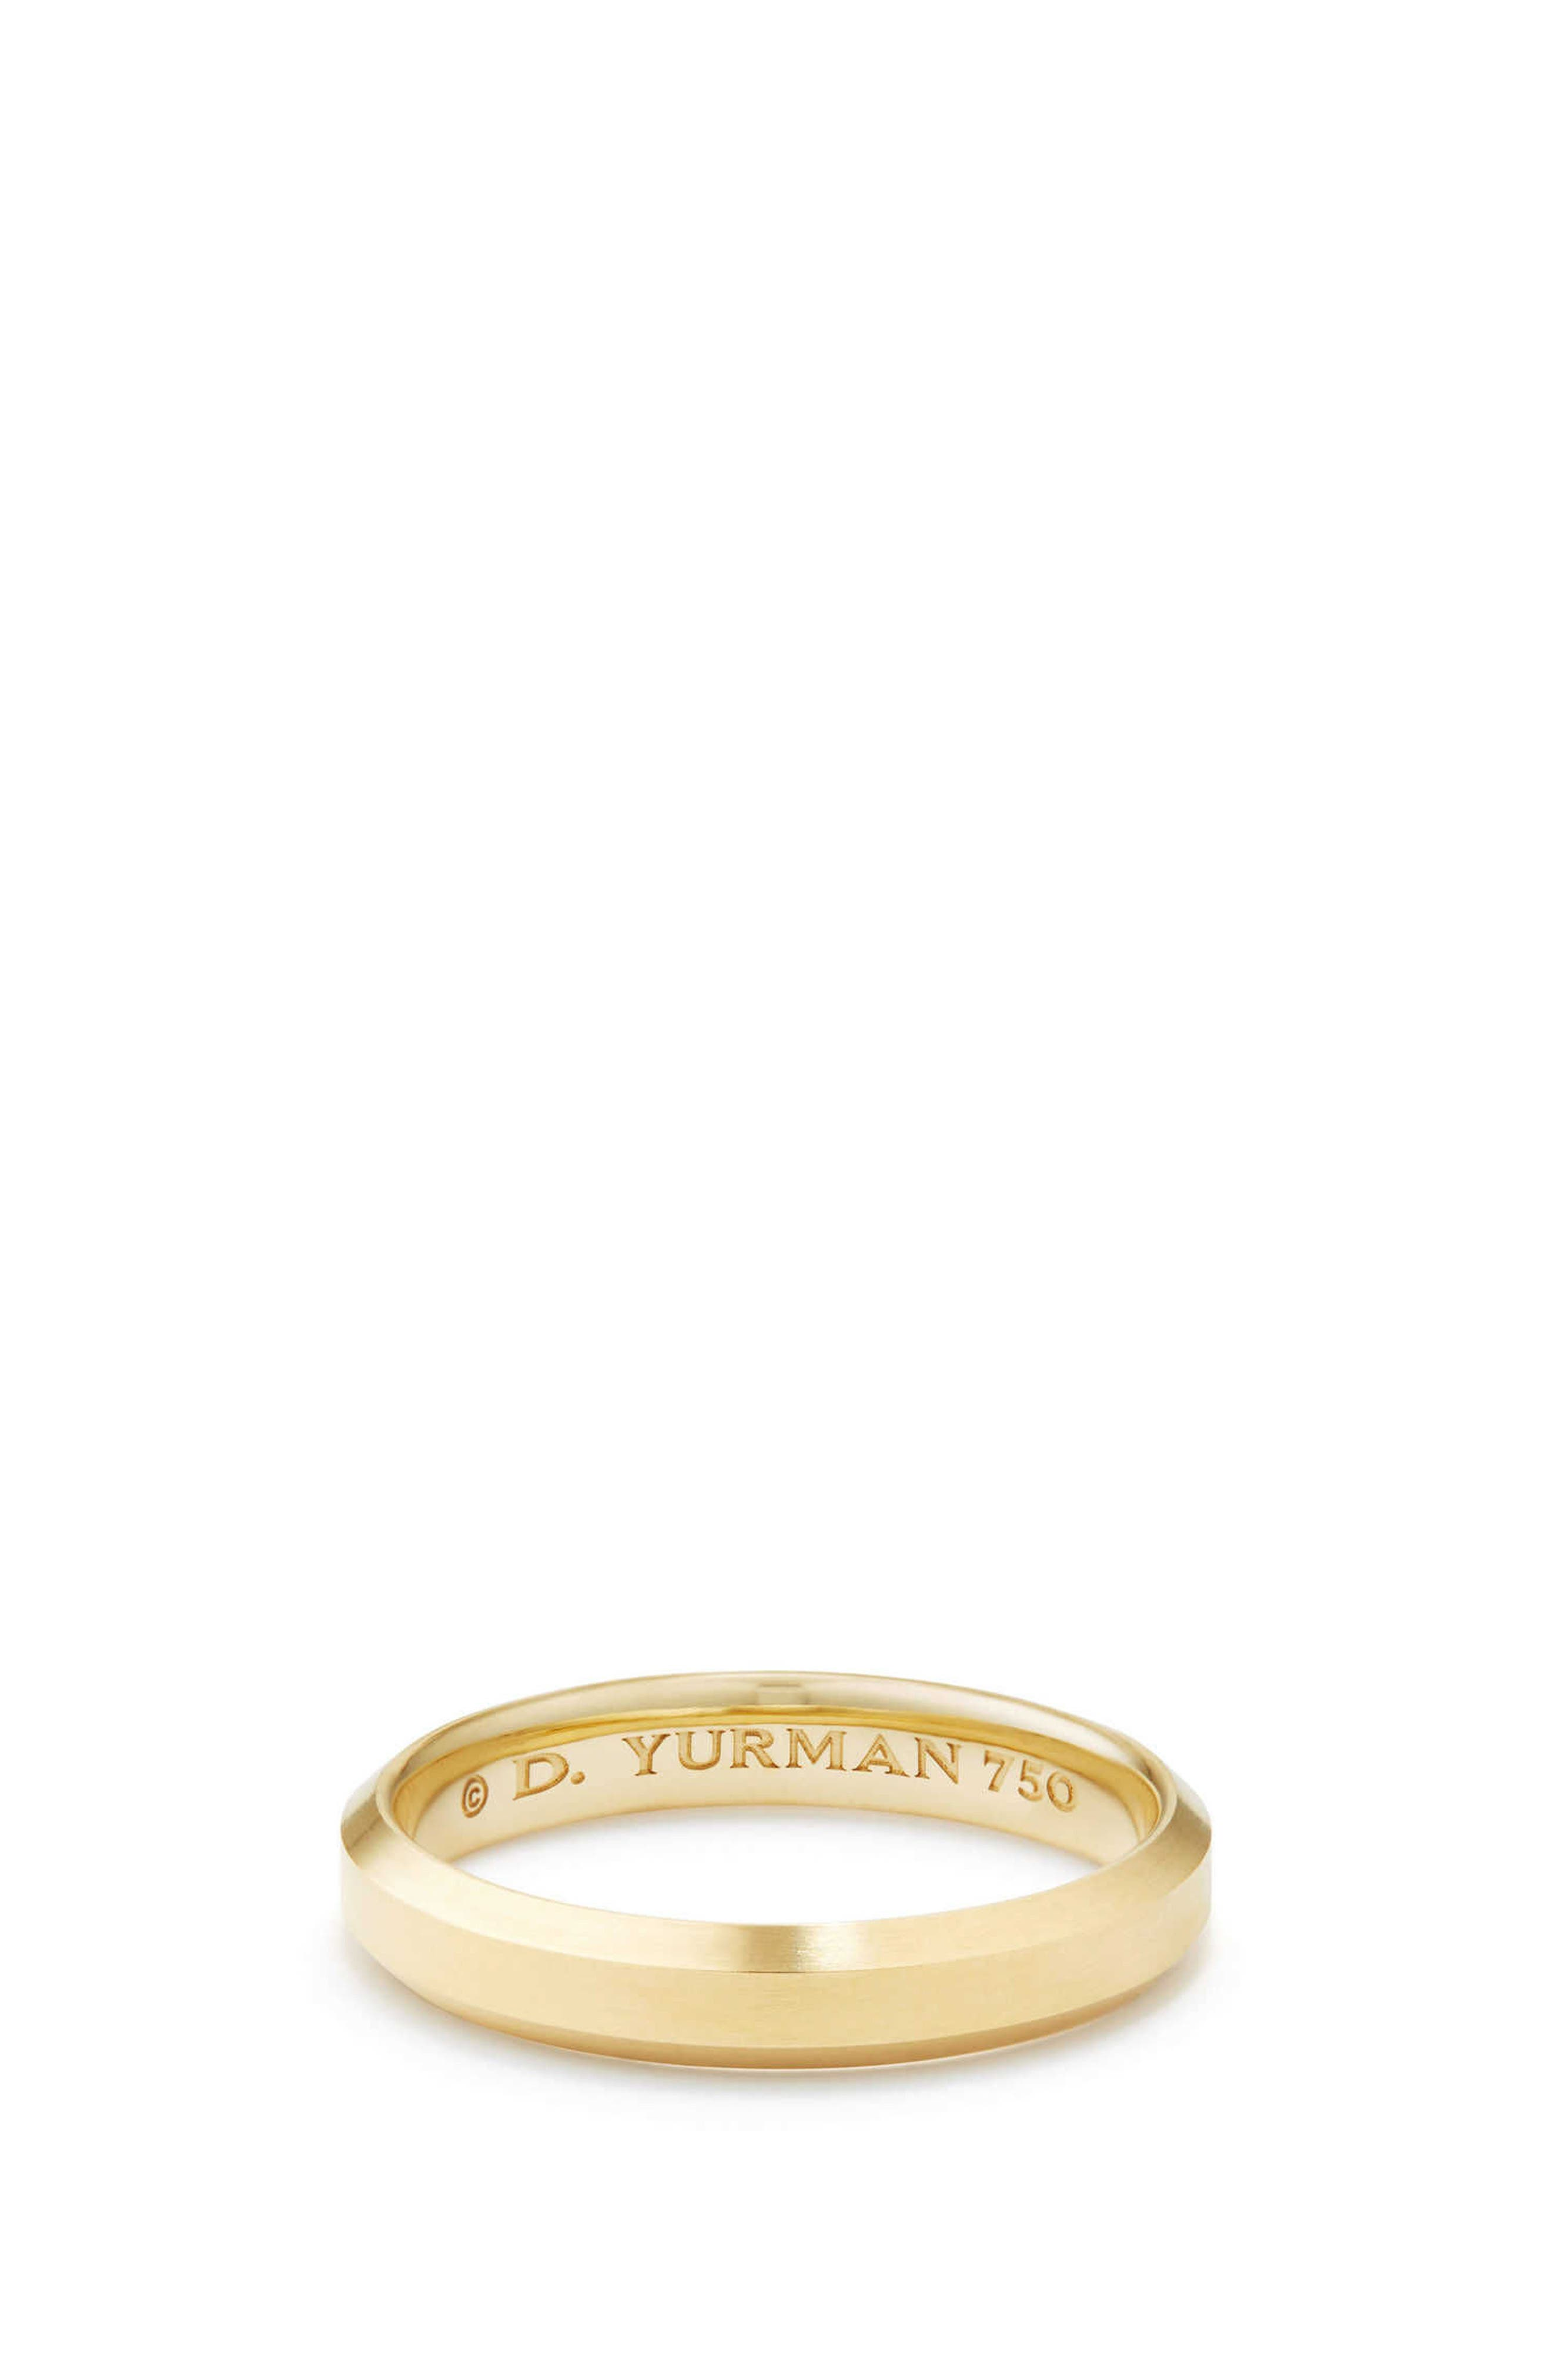 Streamline Band Ring in 18K Gold,                         Main,                         color, 710